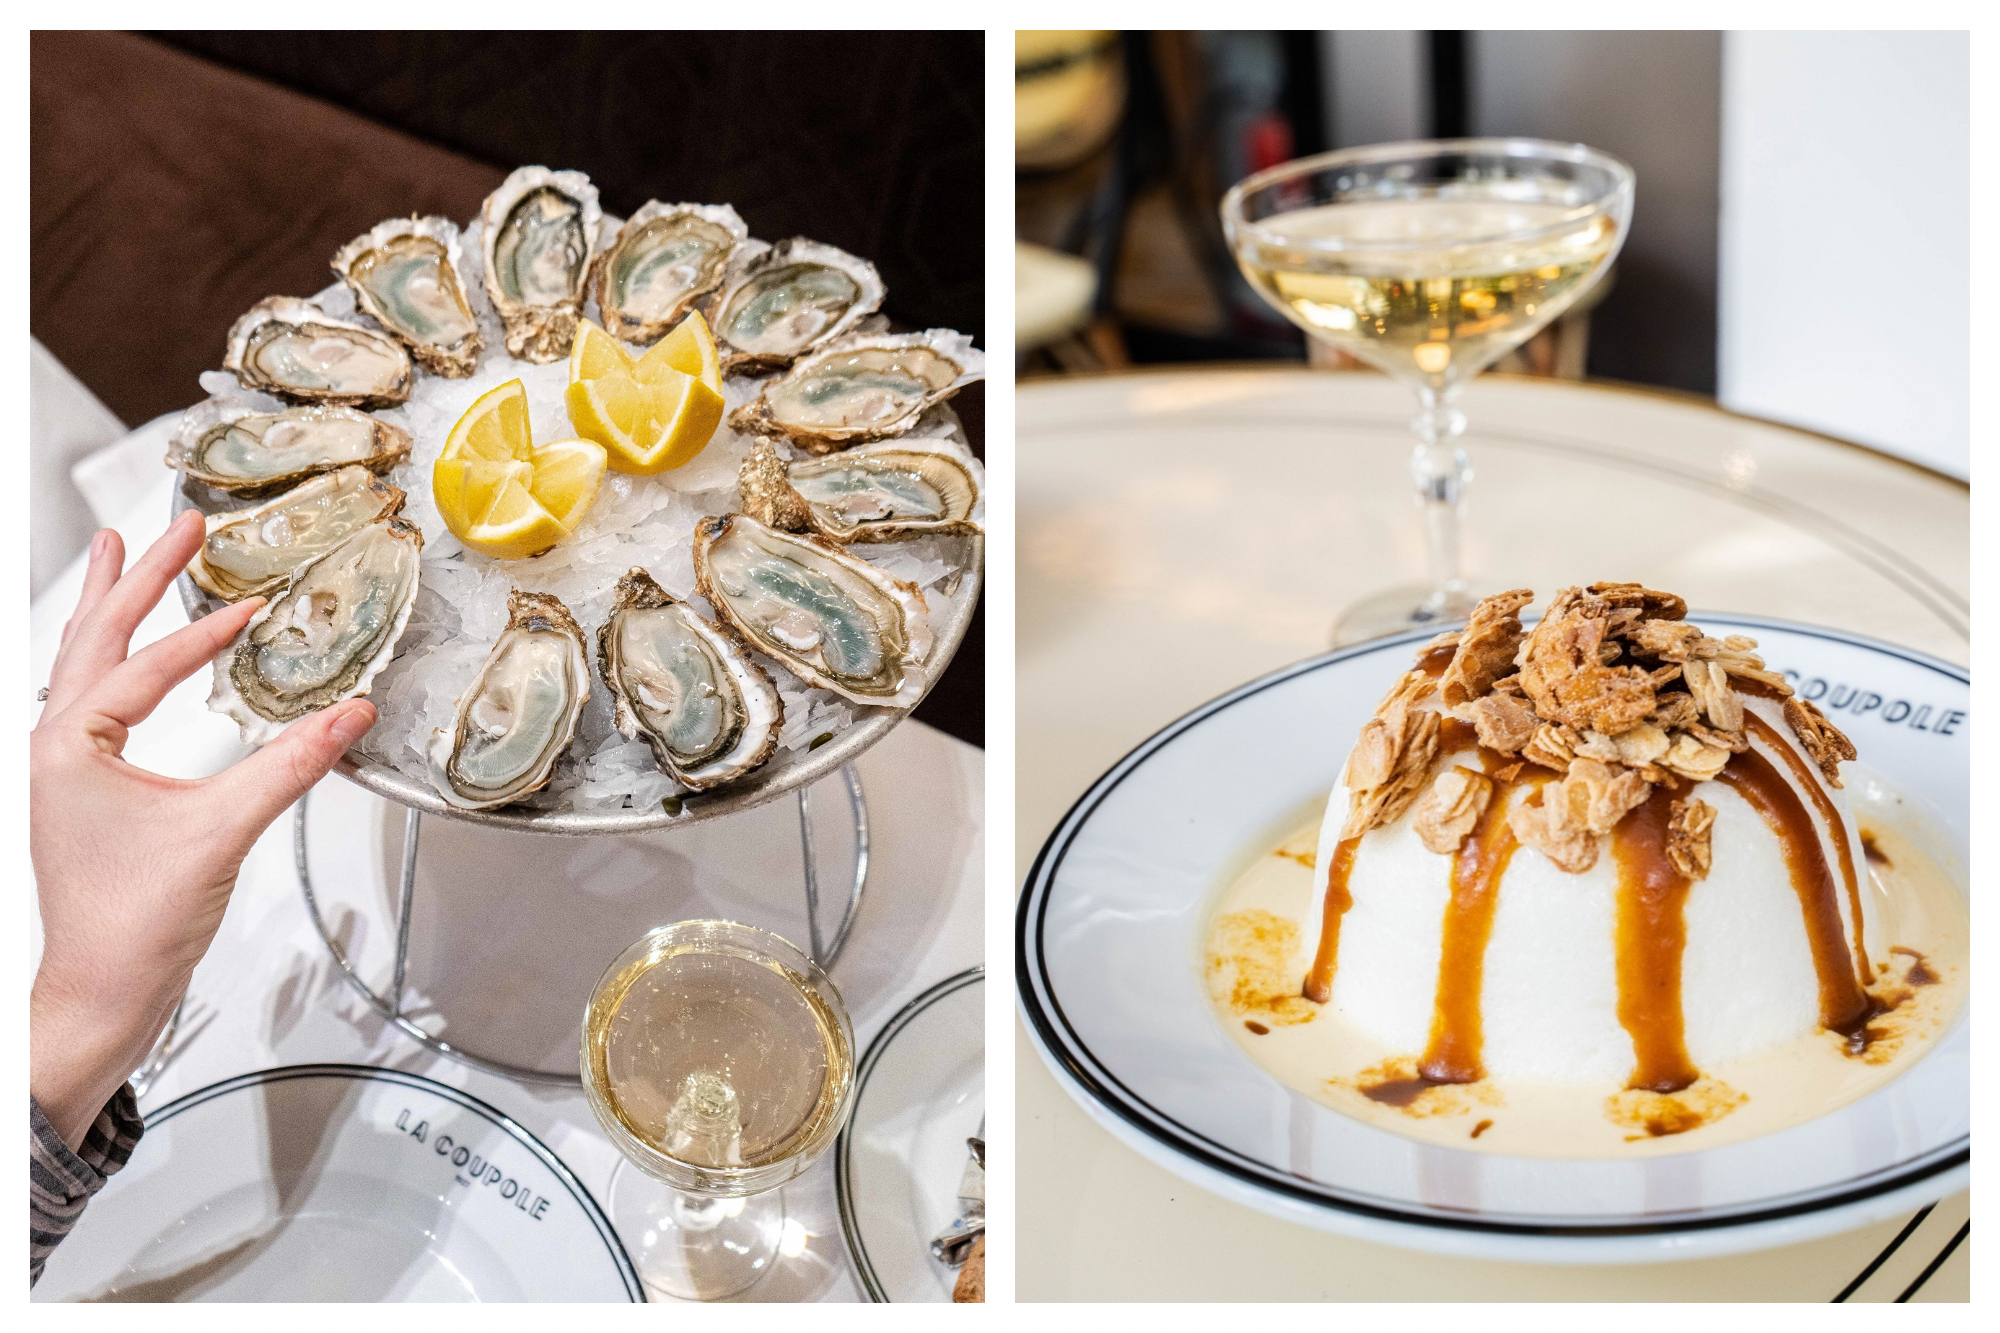 A dish of oysters served on ice with lemon in the middle, a hand is taking an oyster. A plate with the name of the restaurant, La Coupole, on it and a glass of white wine (left). A dish with the dessert Ile Flottante and the name of the restaurant, La Coupole, on it with a glass of white wine (right).